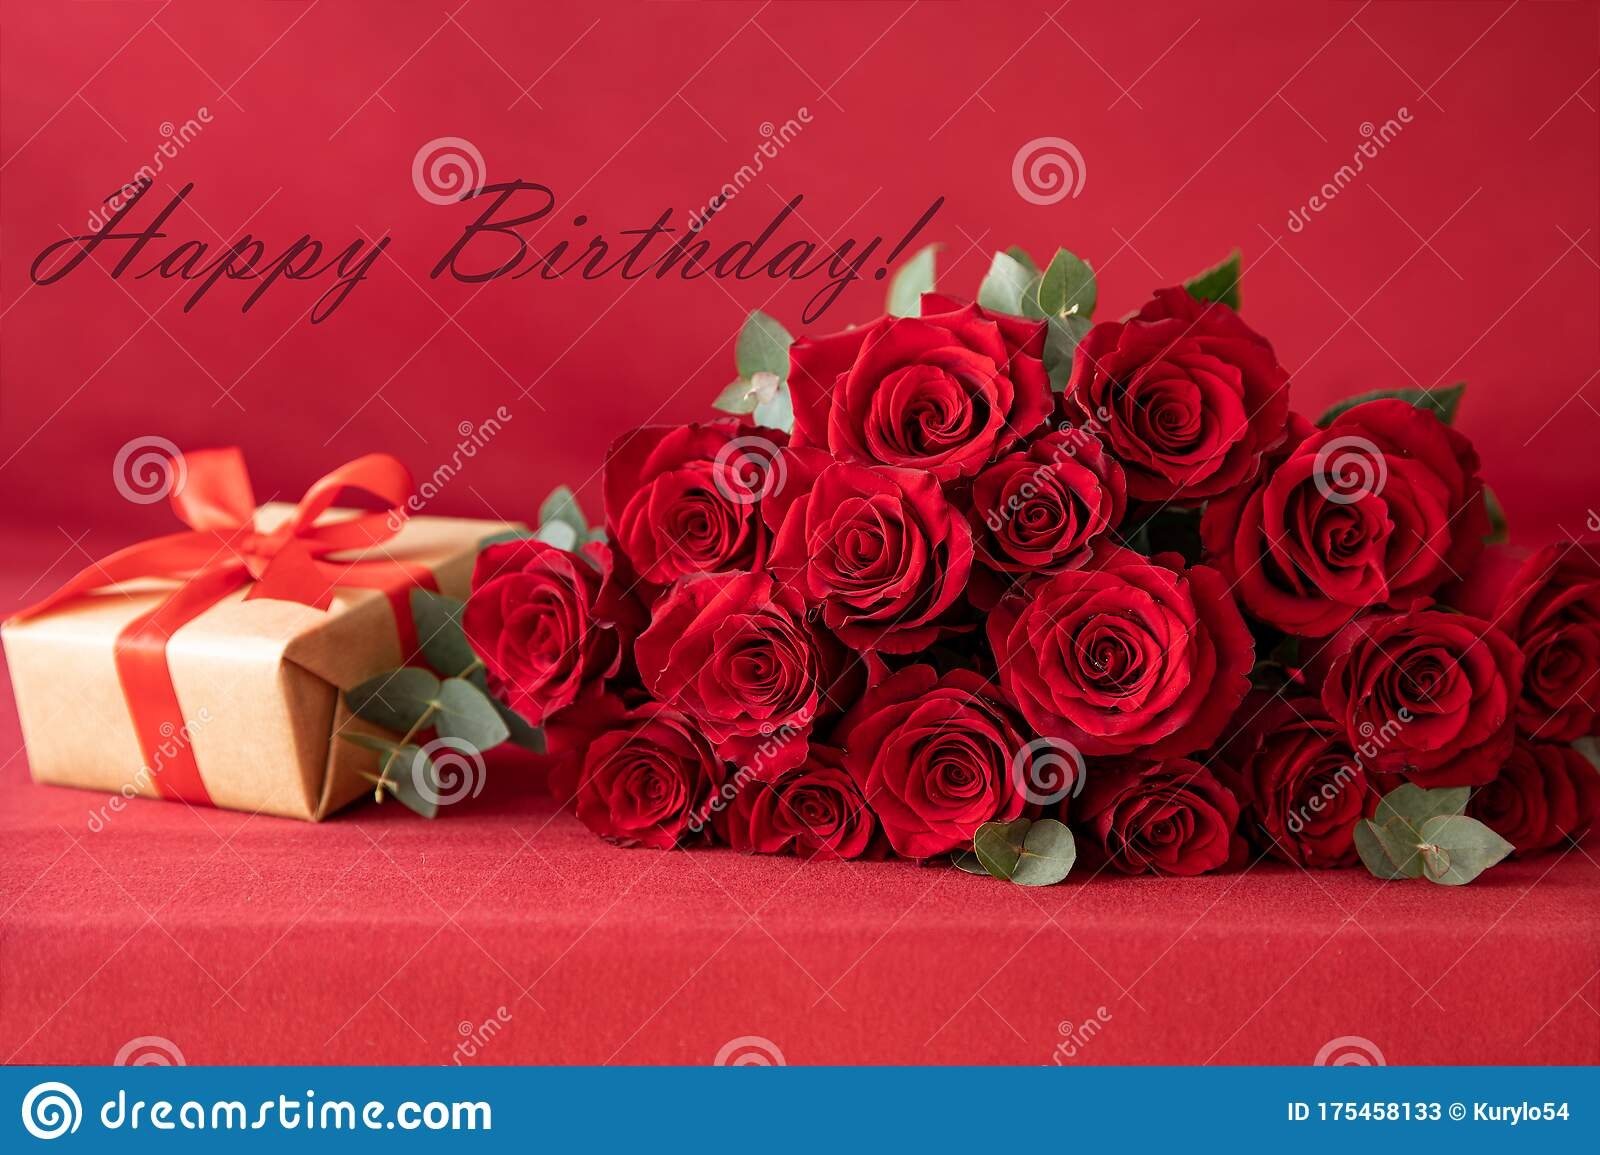 Beautiful Bouquet Of Red Roses With Gift Box On The Red Background Happy Birthday Greeting Card Concept Stock Image Image Of Copy Border 175458133